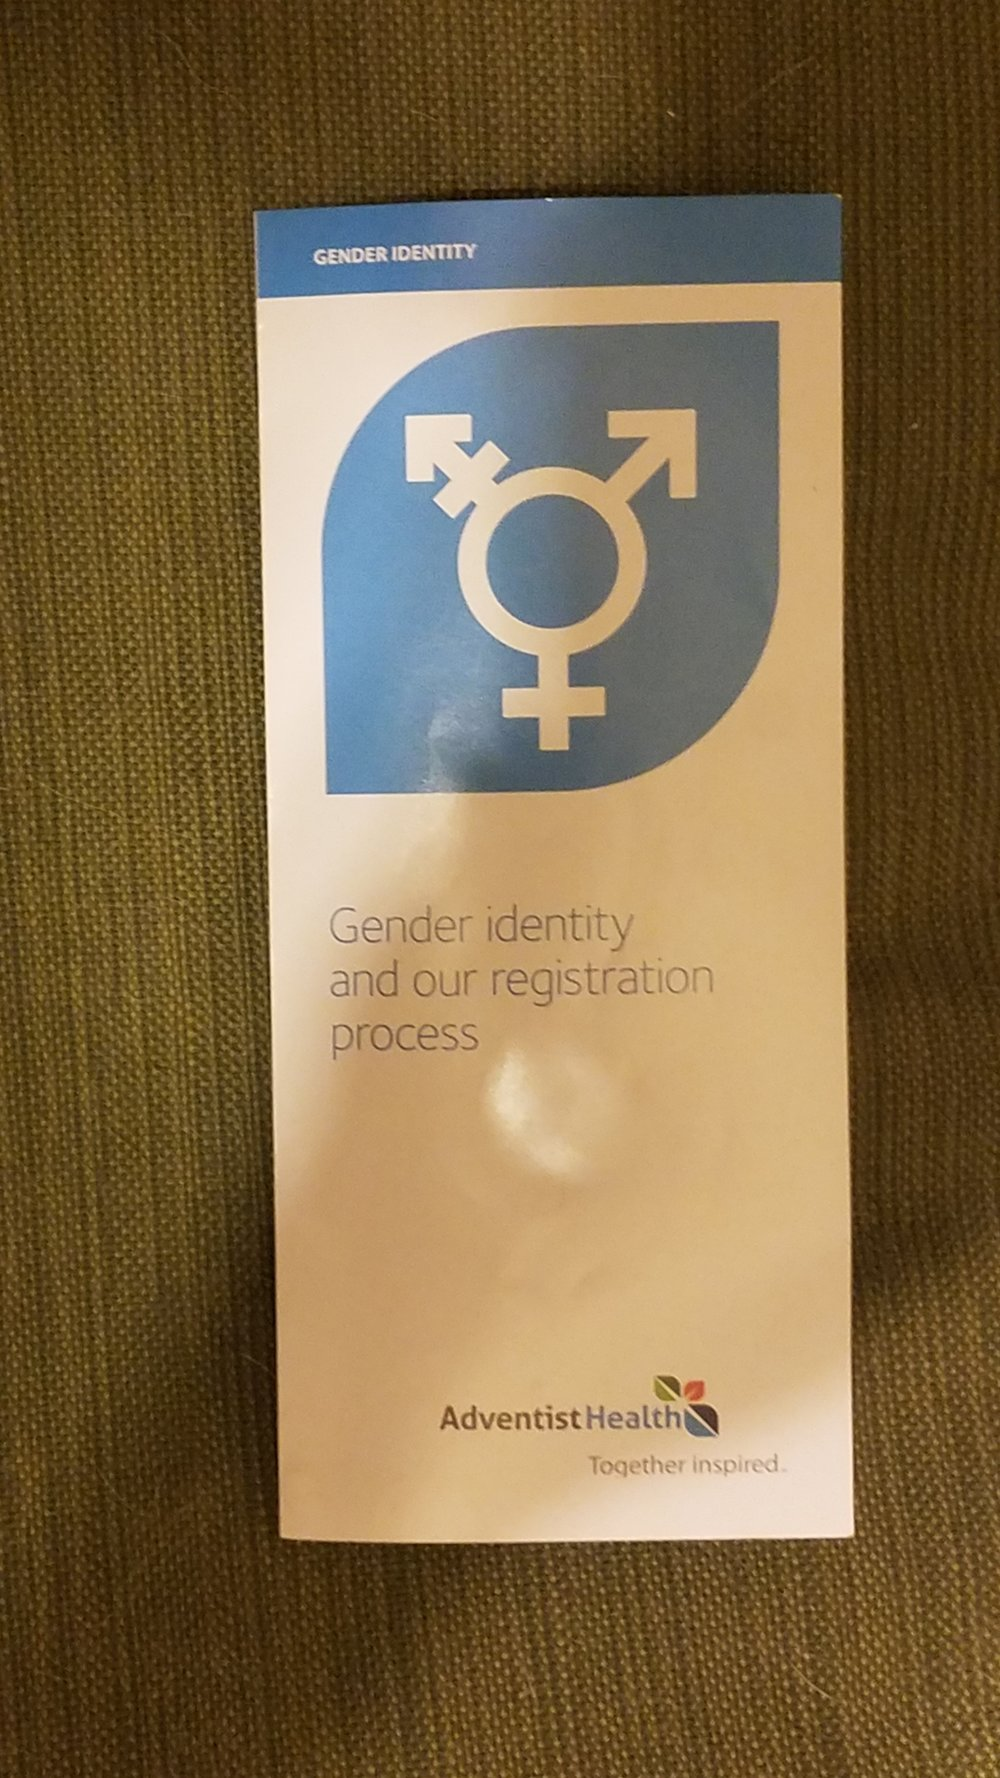 Adventist Health Feather River  brochure on Gender Identity.